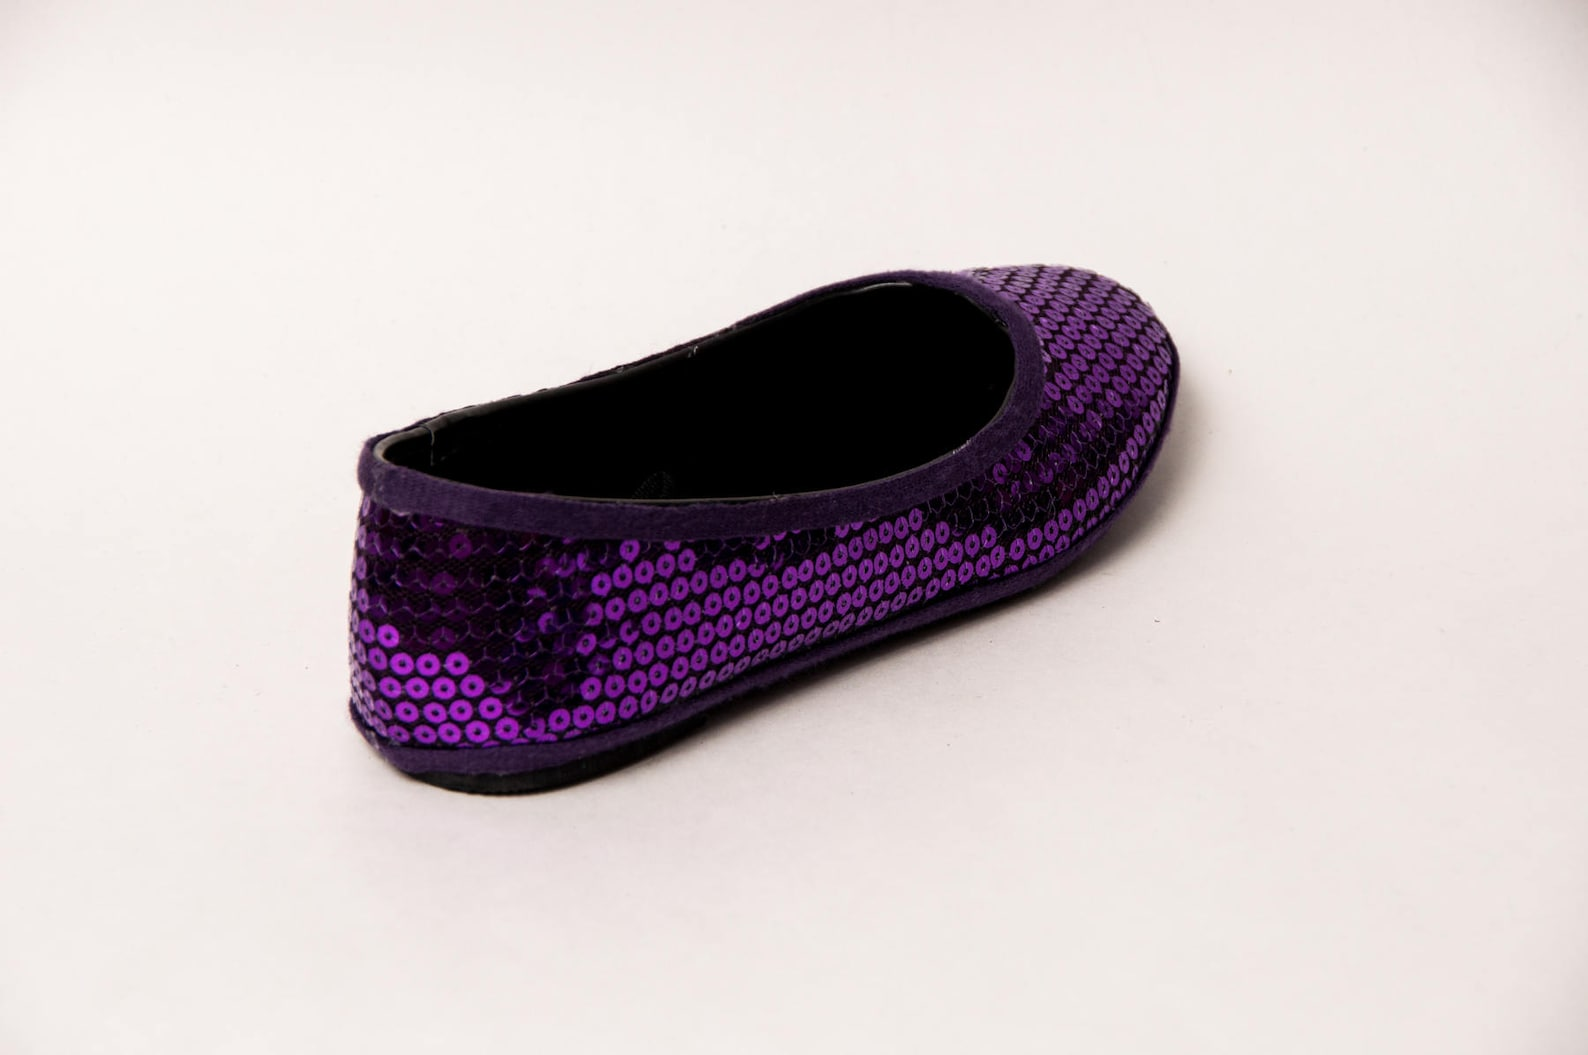 sequin - plum purple slipper ballet flats shoes by princess pumps